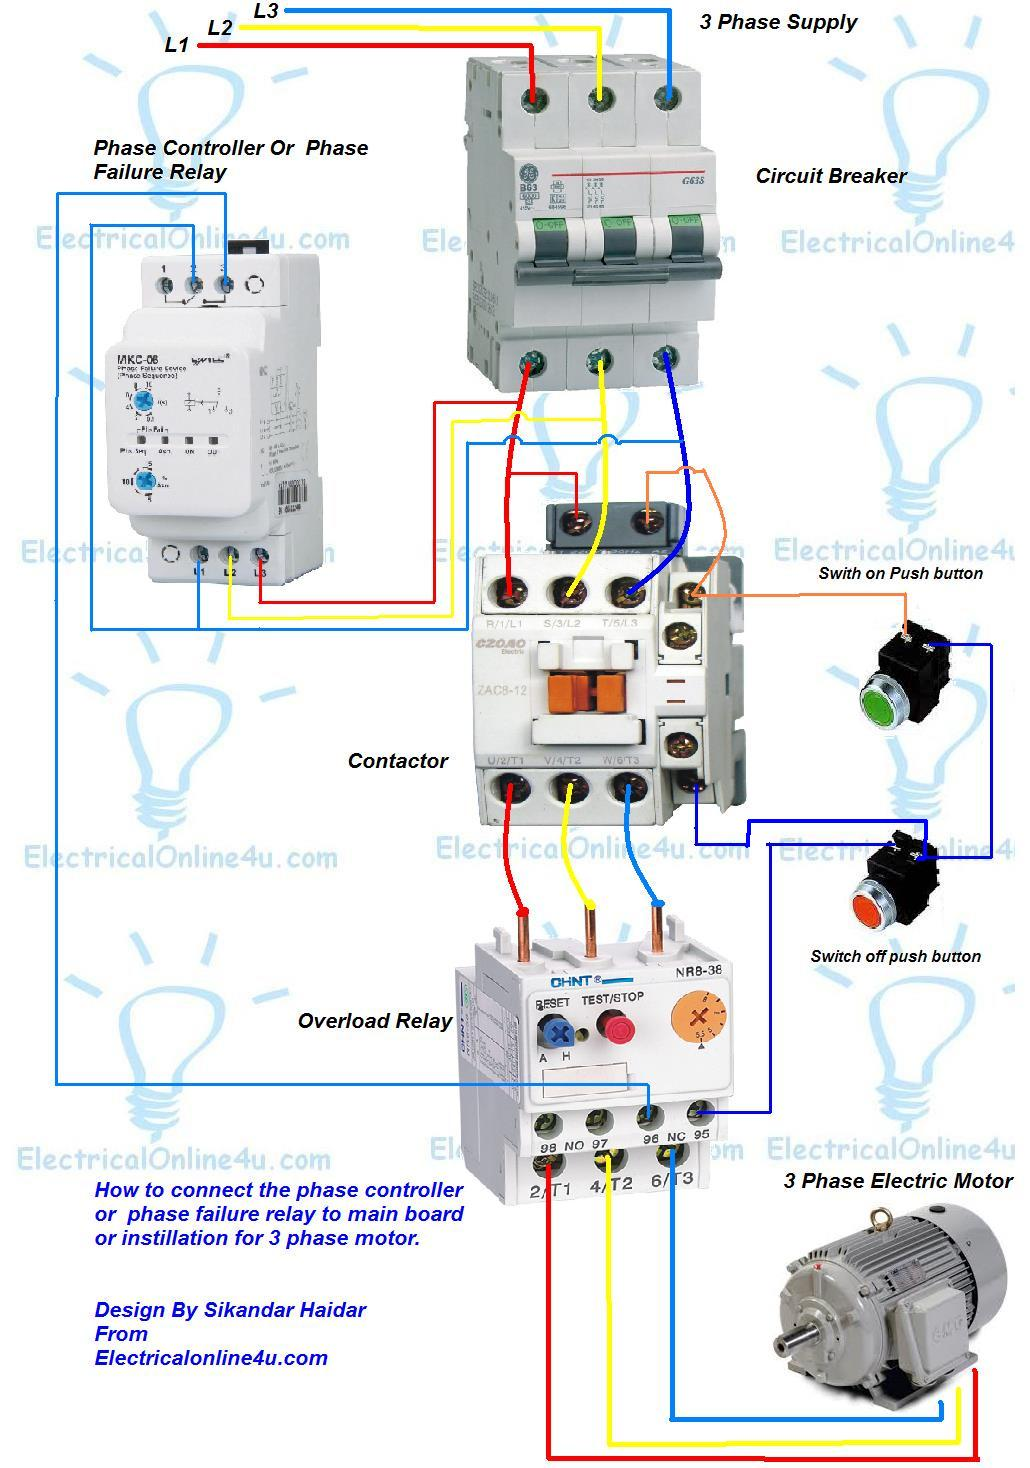 Phase%2Bfailure%2Brelay%2B %2Bphase%2Bcontroller%2Binstilaion%2Bin%2B3%2Bphase%2BMain%2Bboard%2Bor%2Bfor%2B3%2Bphase%2Bmotor phase controller wiring phase failure relay diagram electrical relay wiring diagram at n-0.co